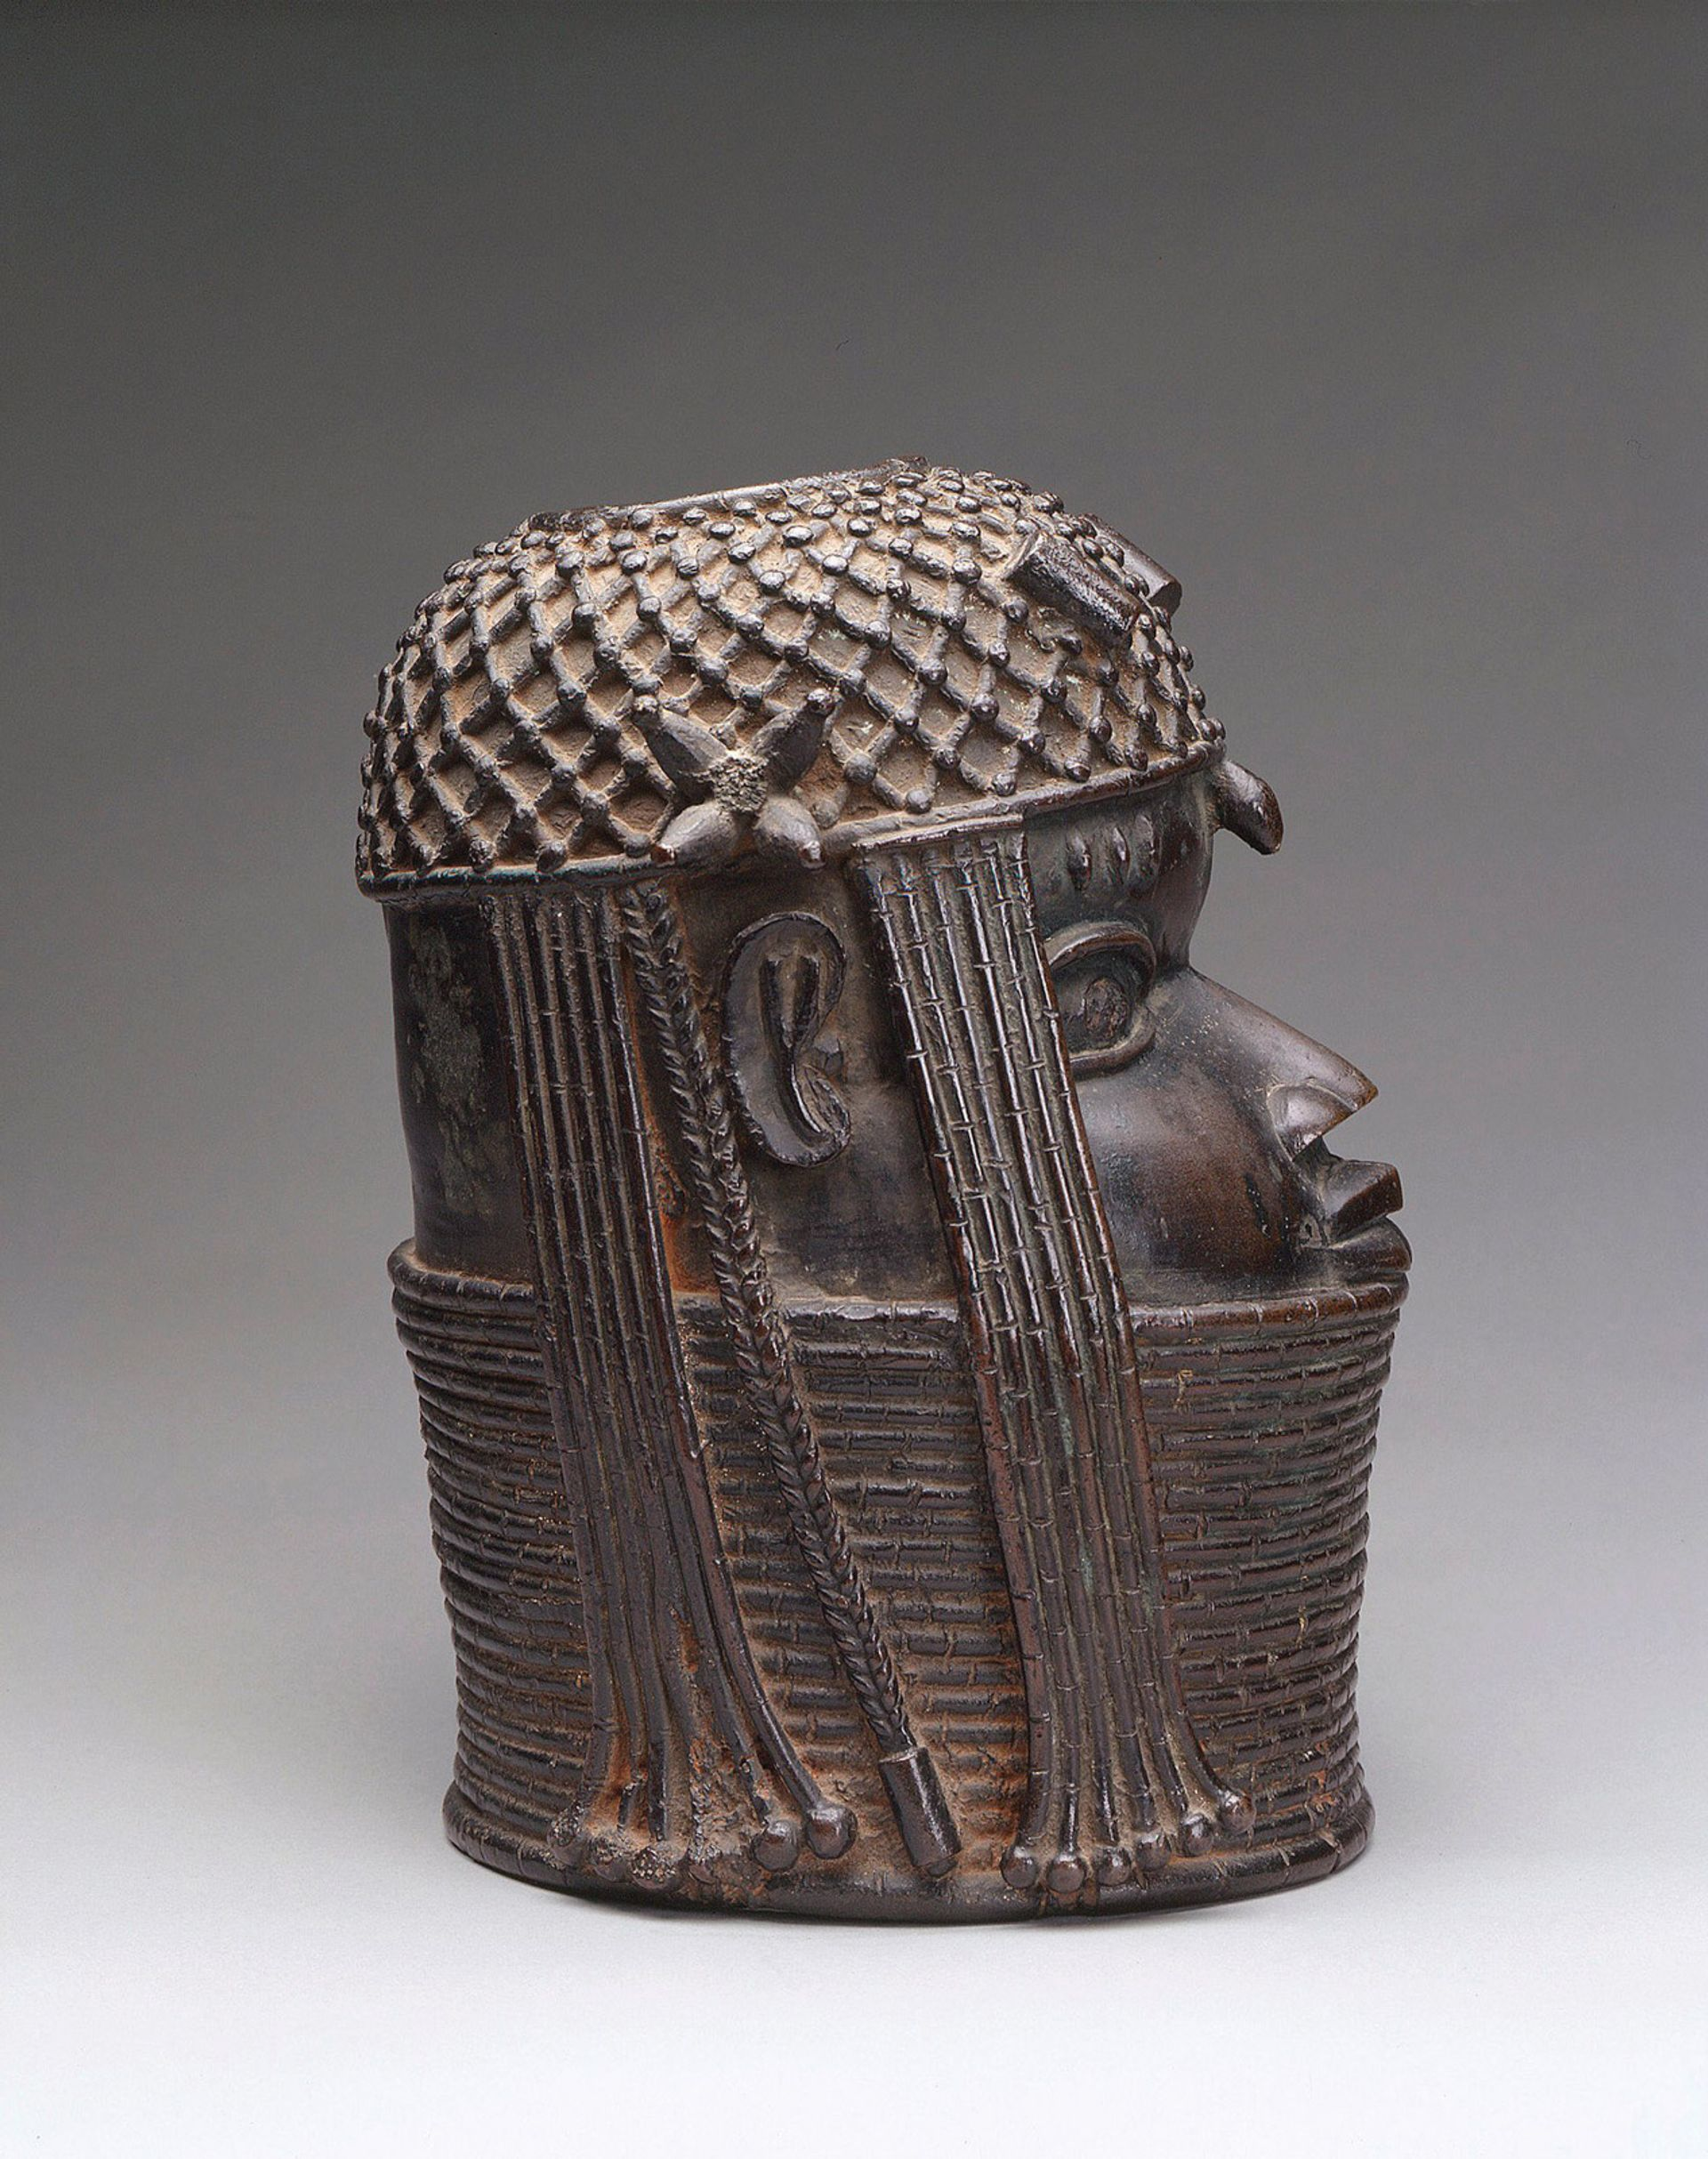 The Benin head of an oba, around 1650, was looted twice Royal Collection Trust © Her Majesty Queen Elizabeth II 2021